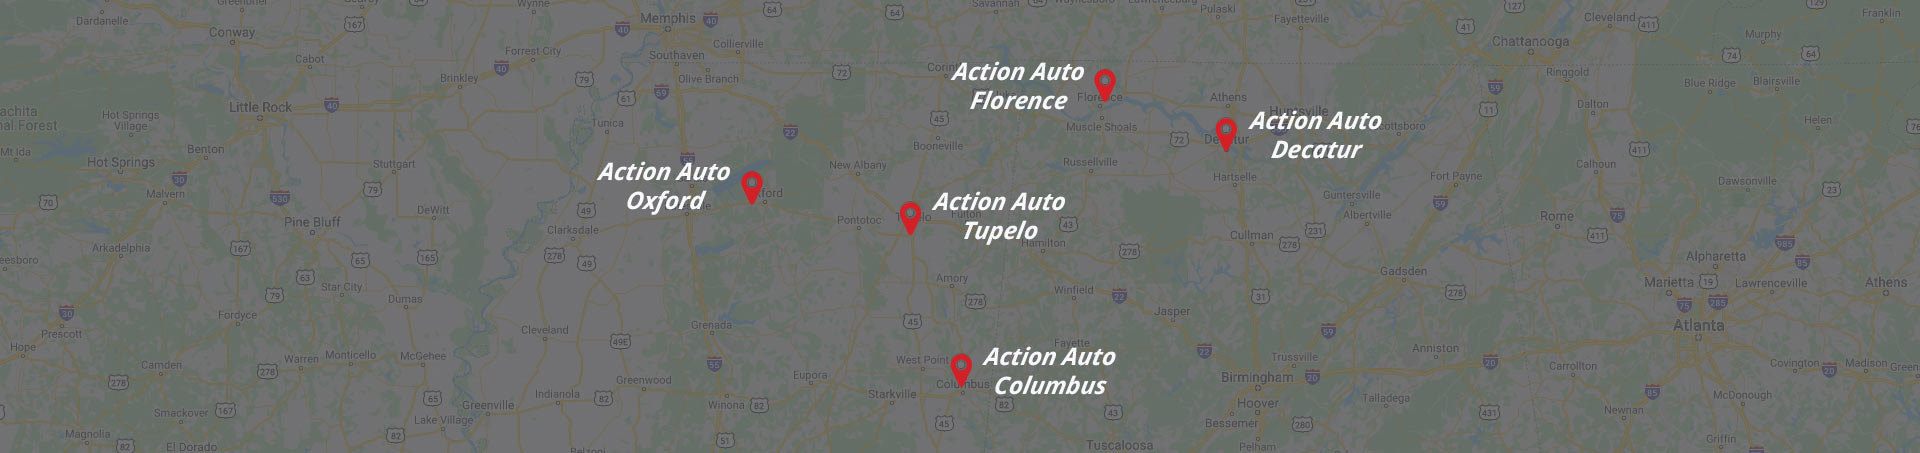 Action Auto map